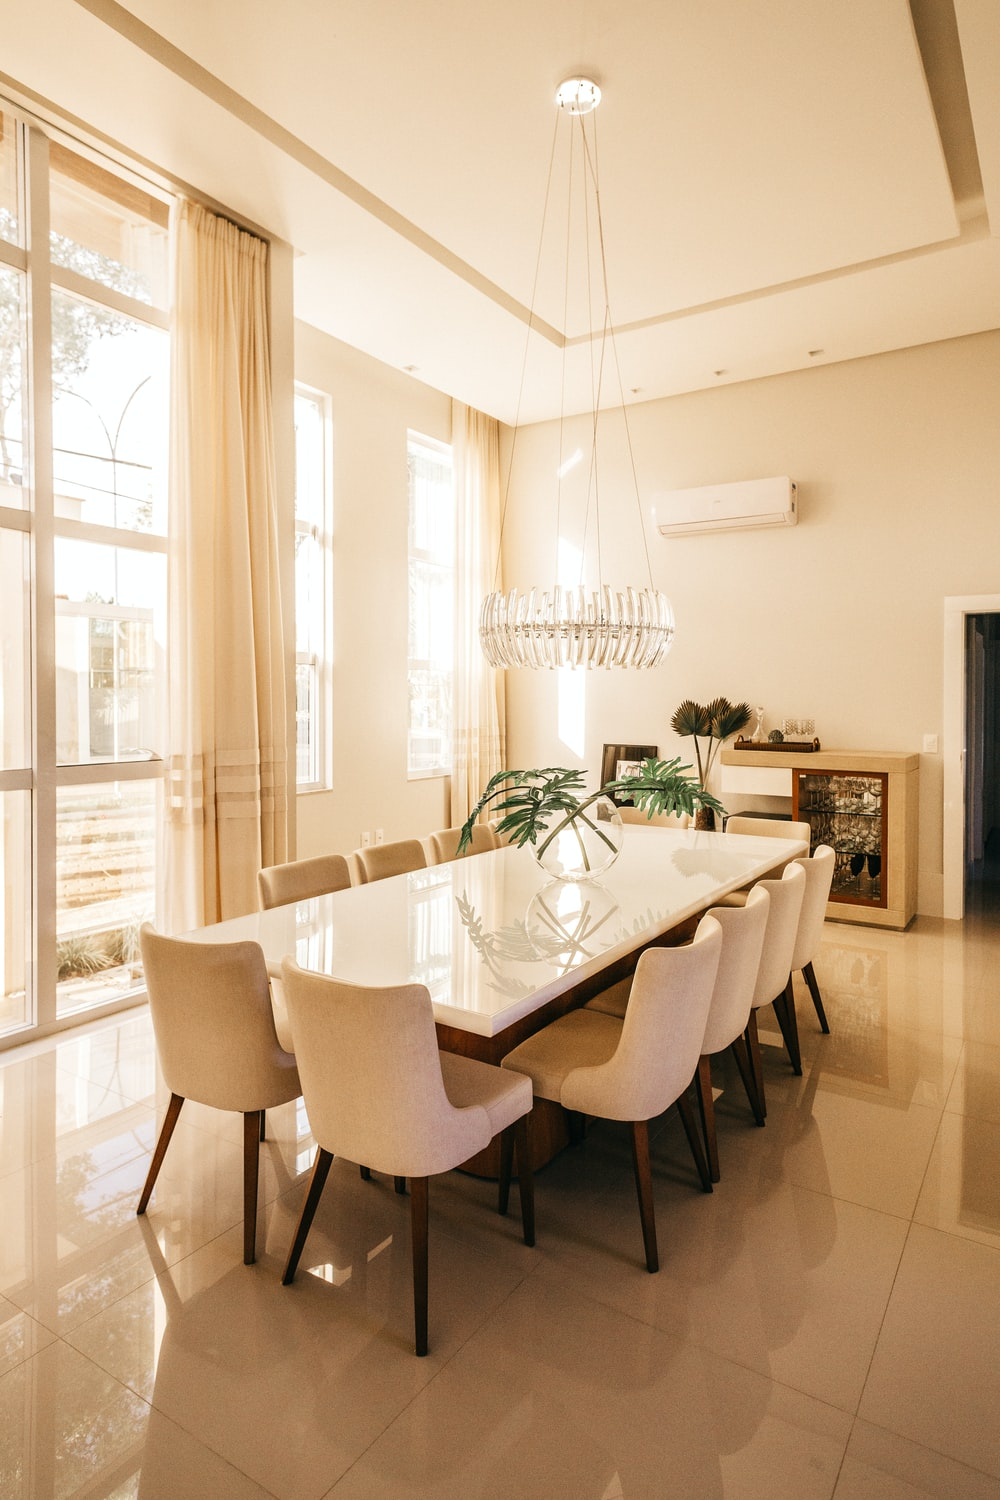 Kitchen Dining Room Designs - Choosing The Right Design